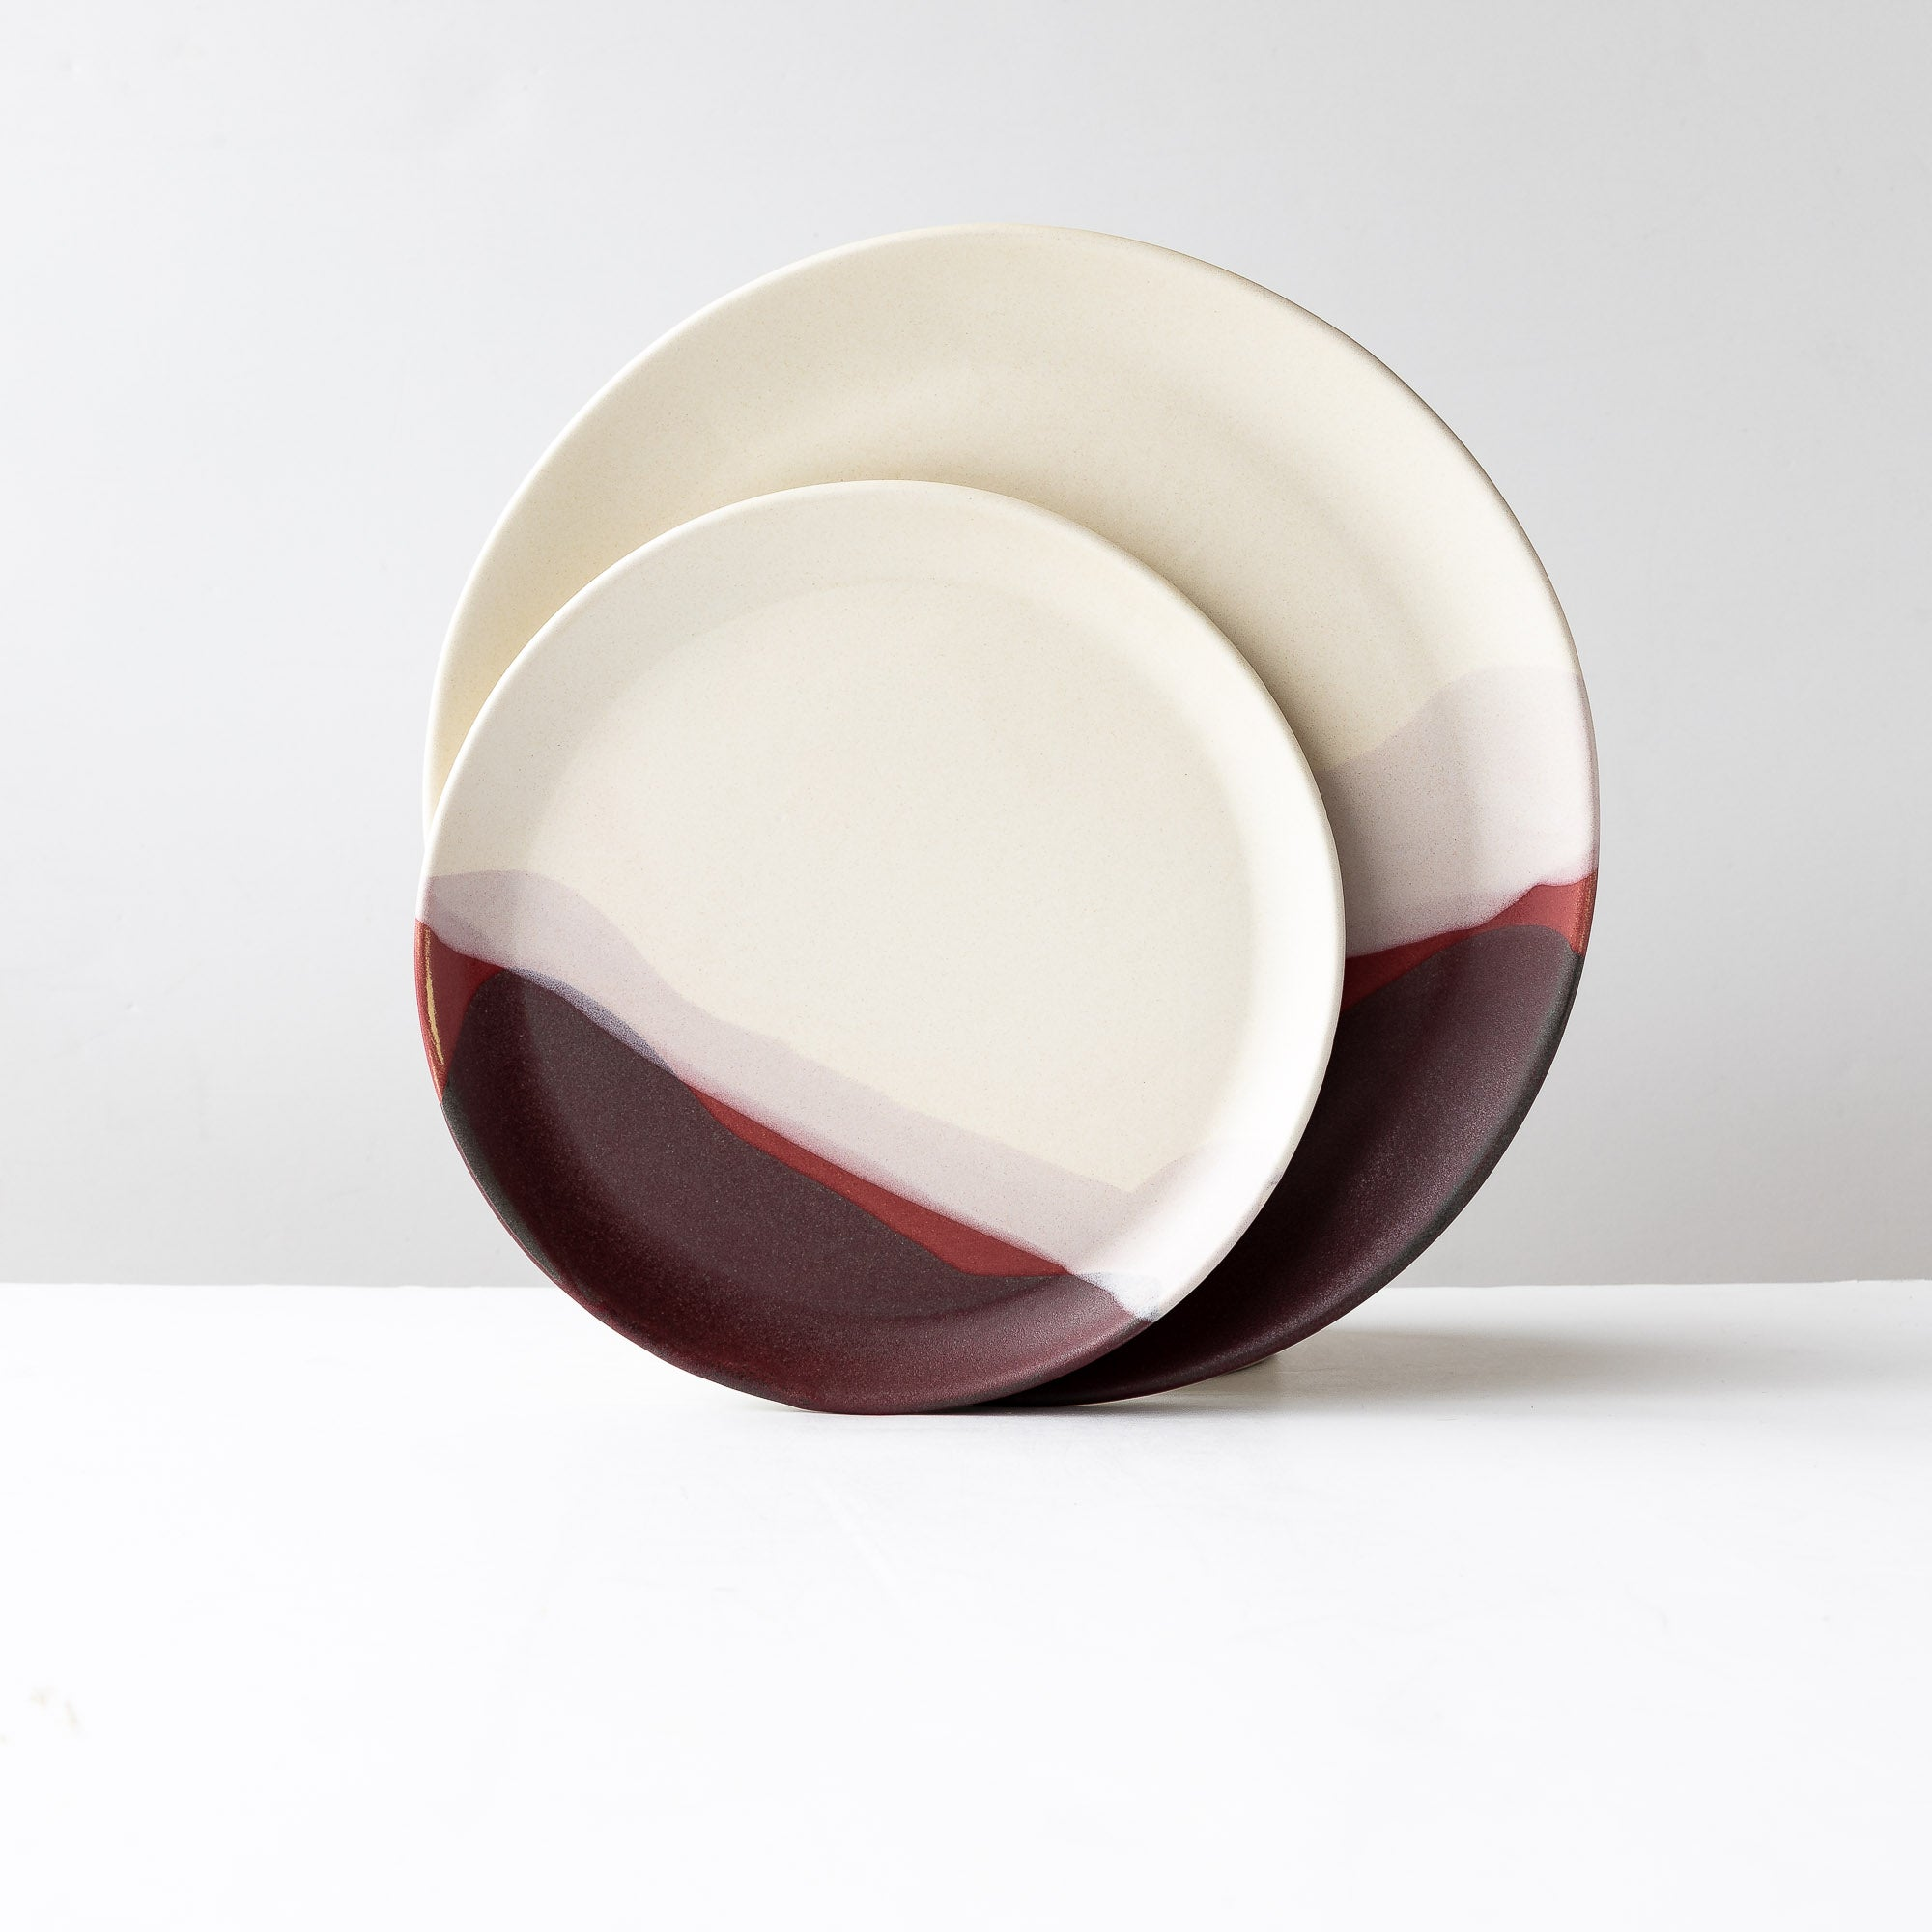 Pays d'O - Two Handmade Stoneware Plates - Sold by Chic & Basta